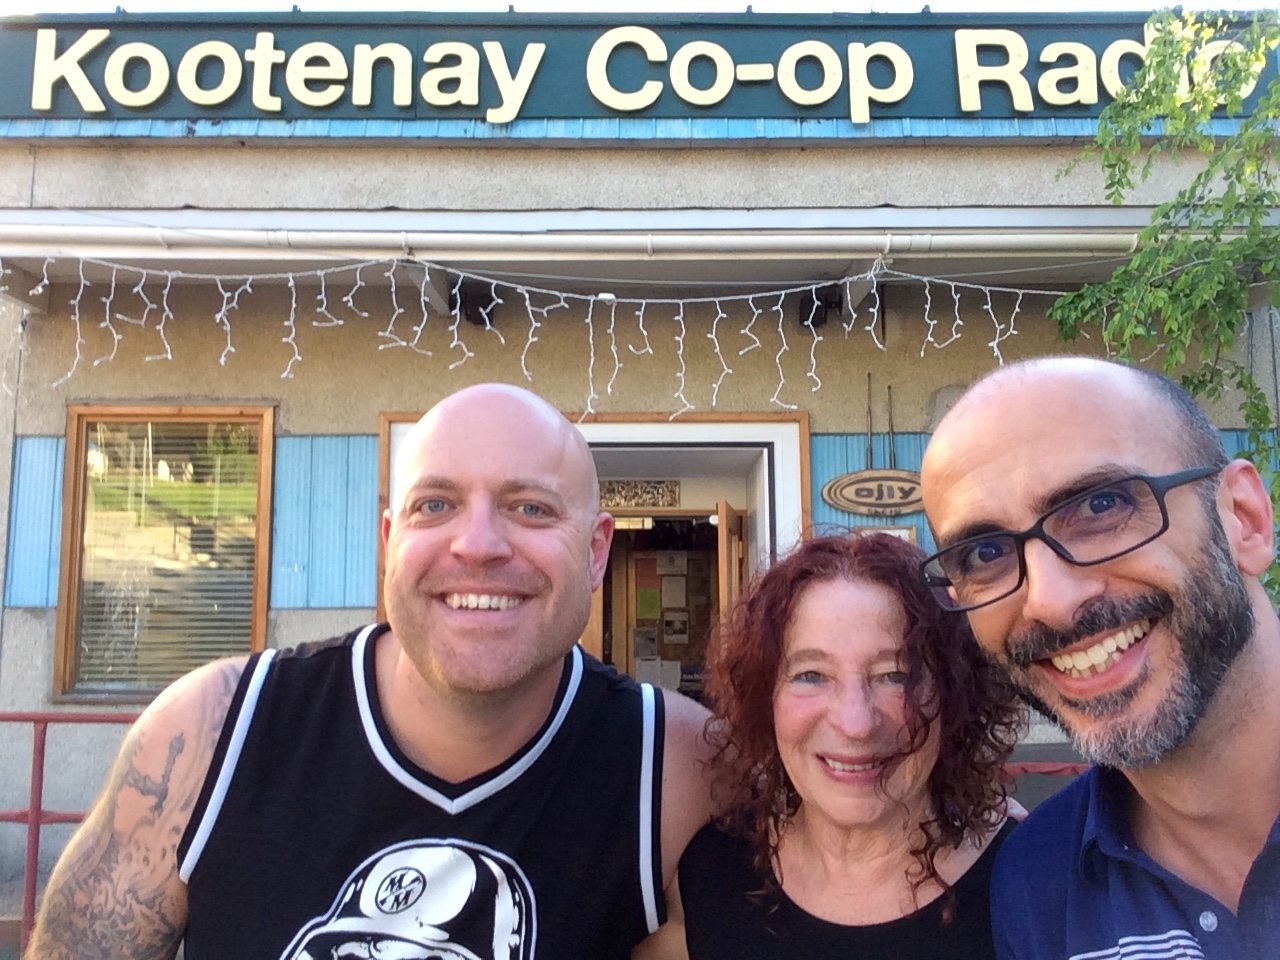 Stand And Deliver With Judy Banfield On Kootenay Coop Radio_May 22_2017